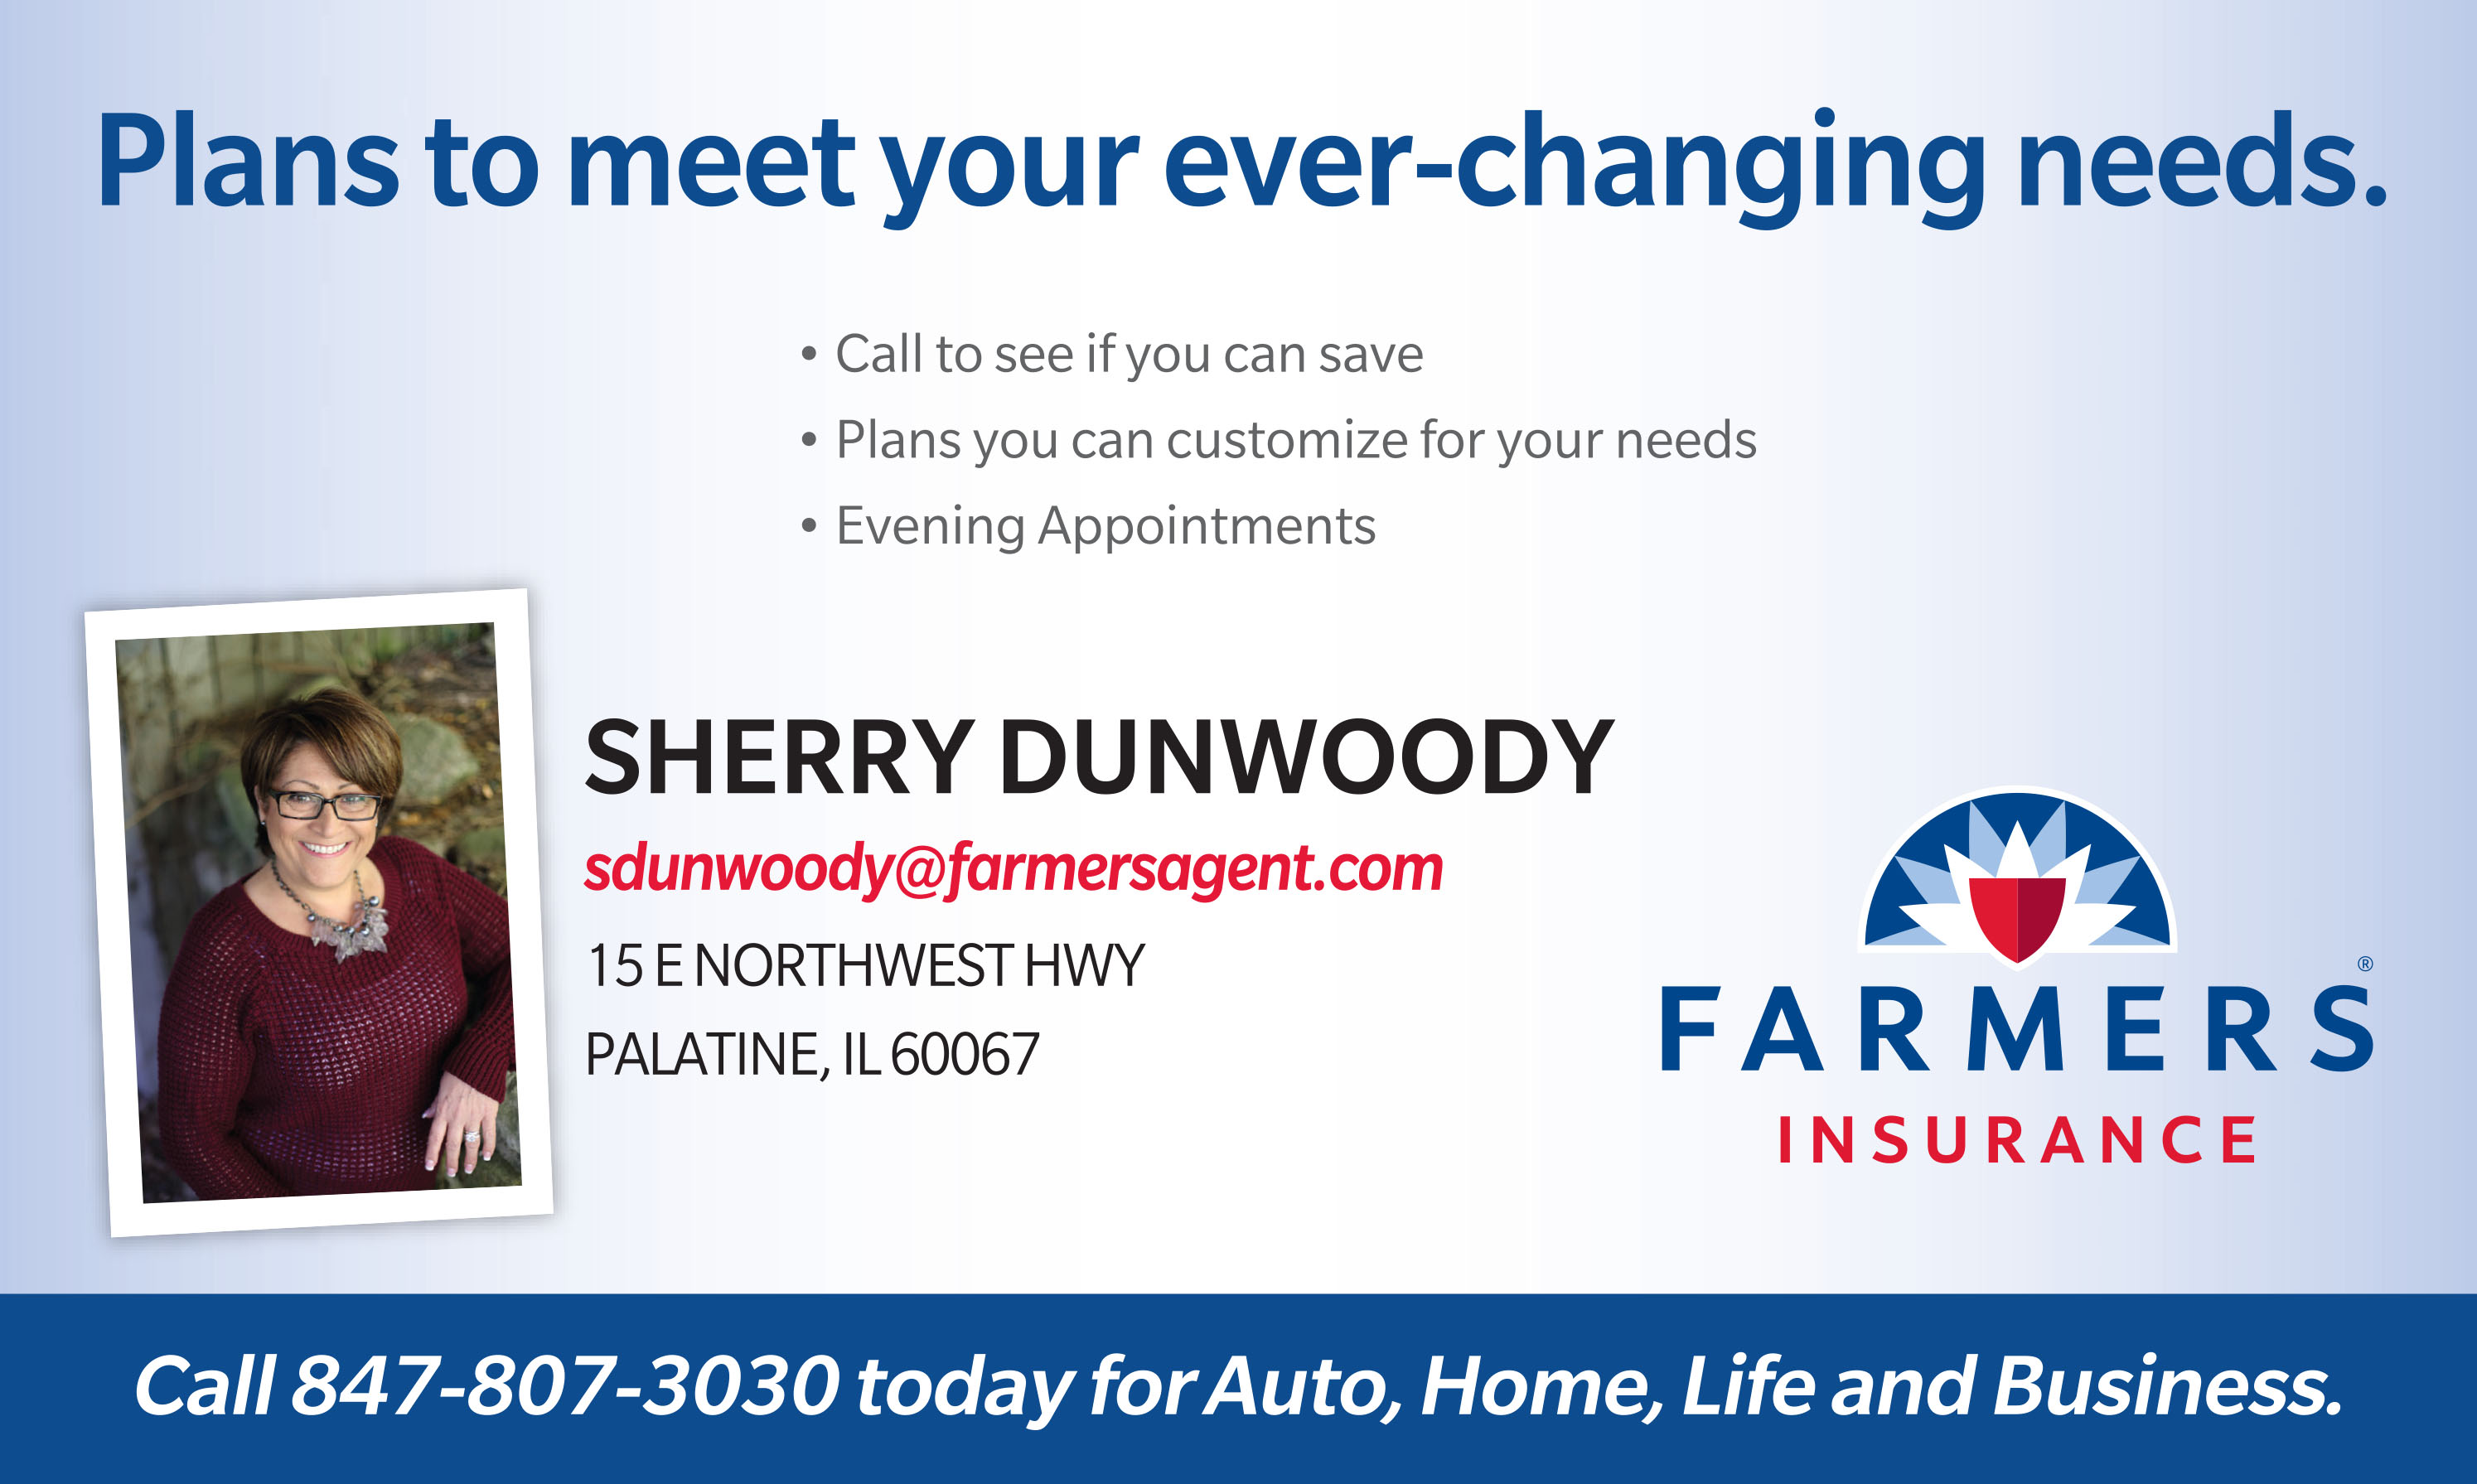 Sherry Dunwoody's Farmer's Insurance